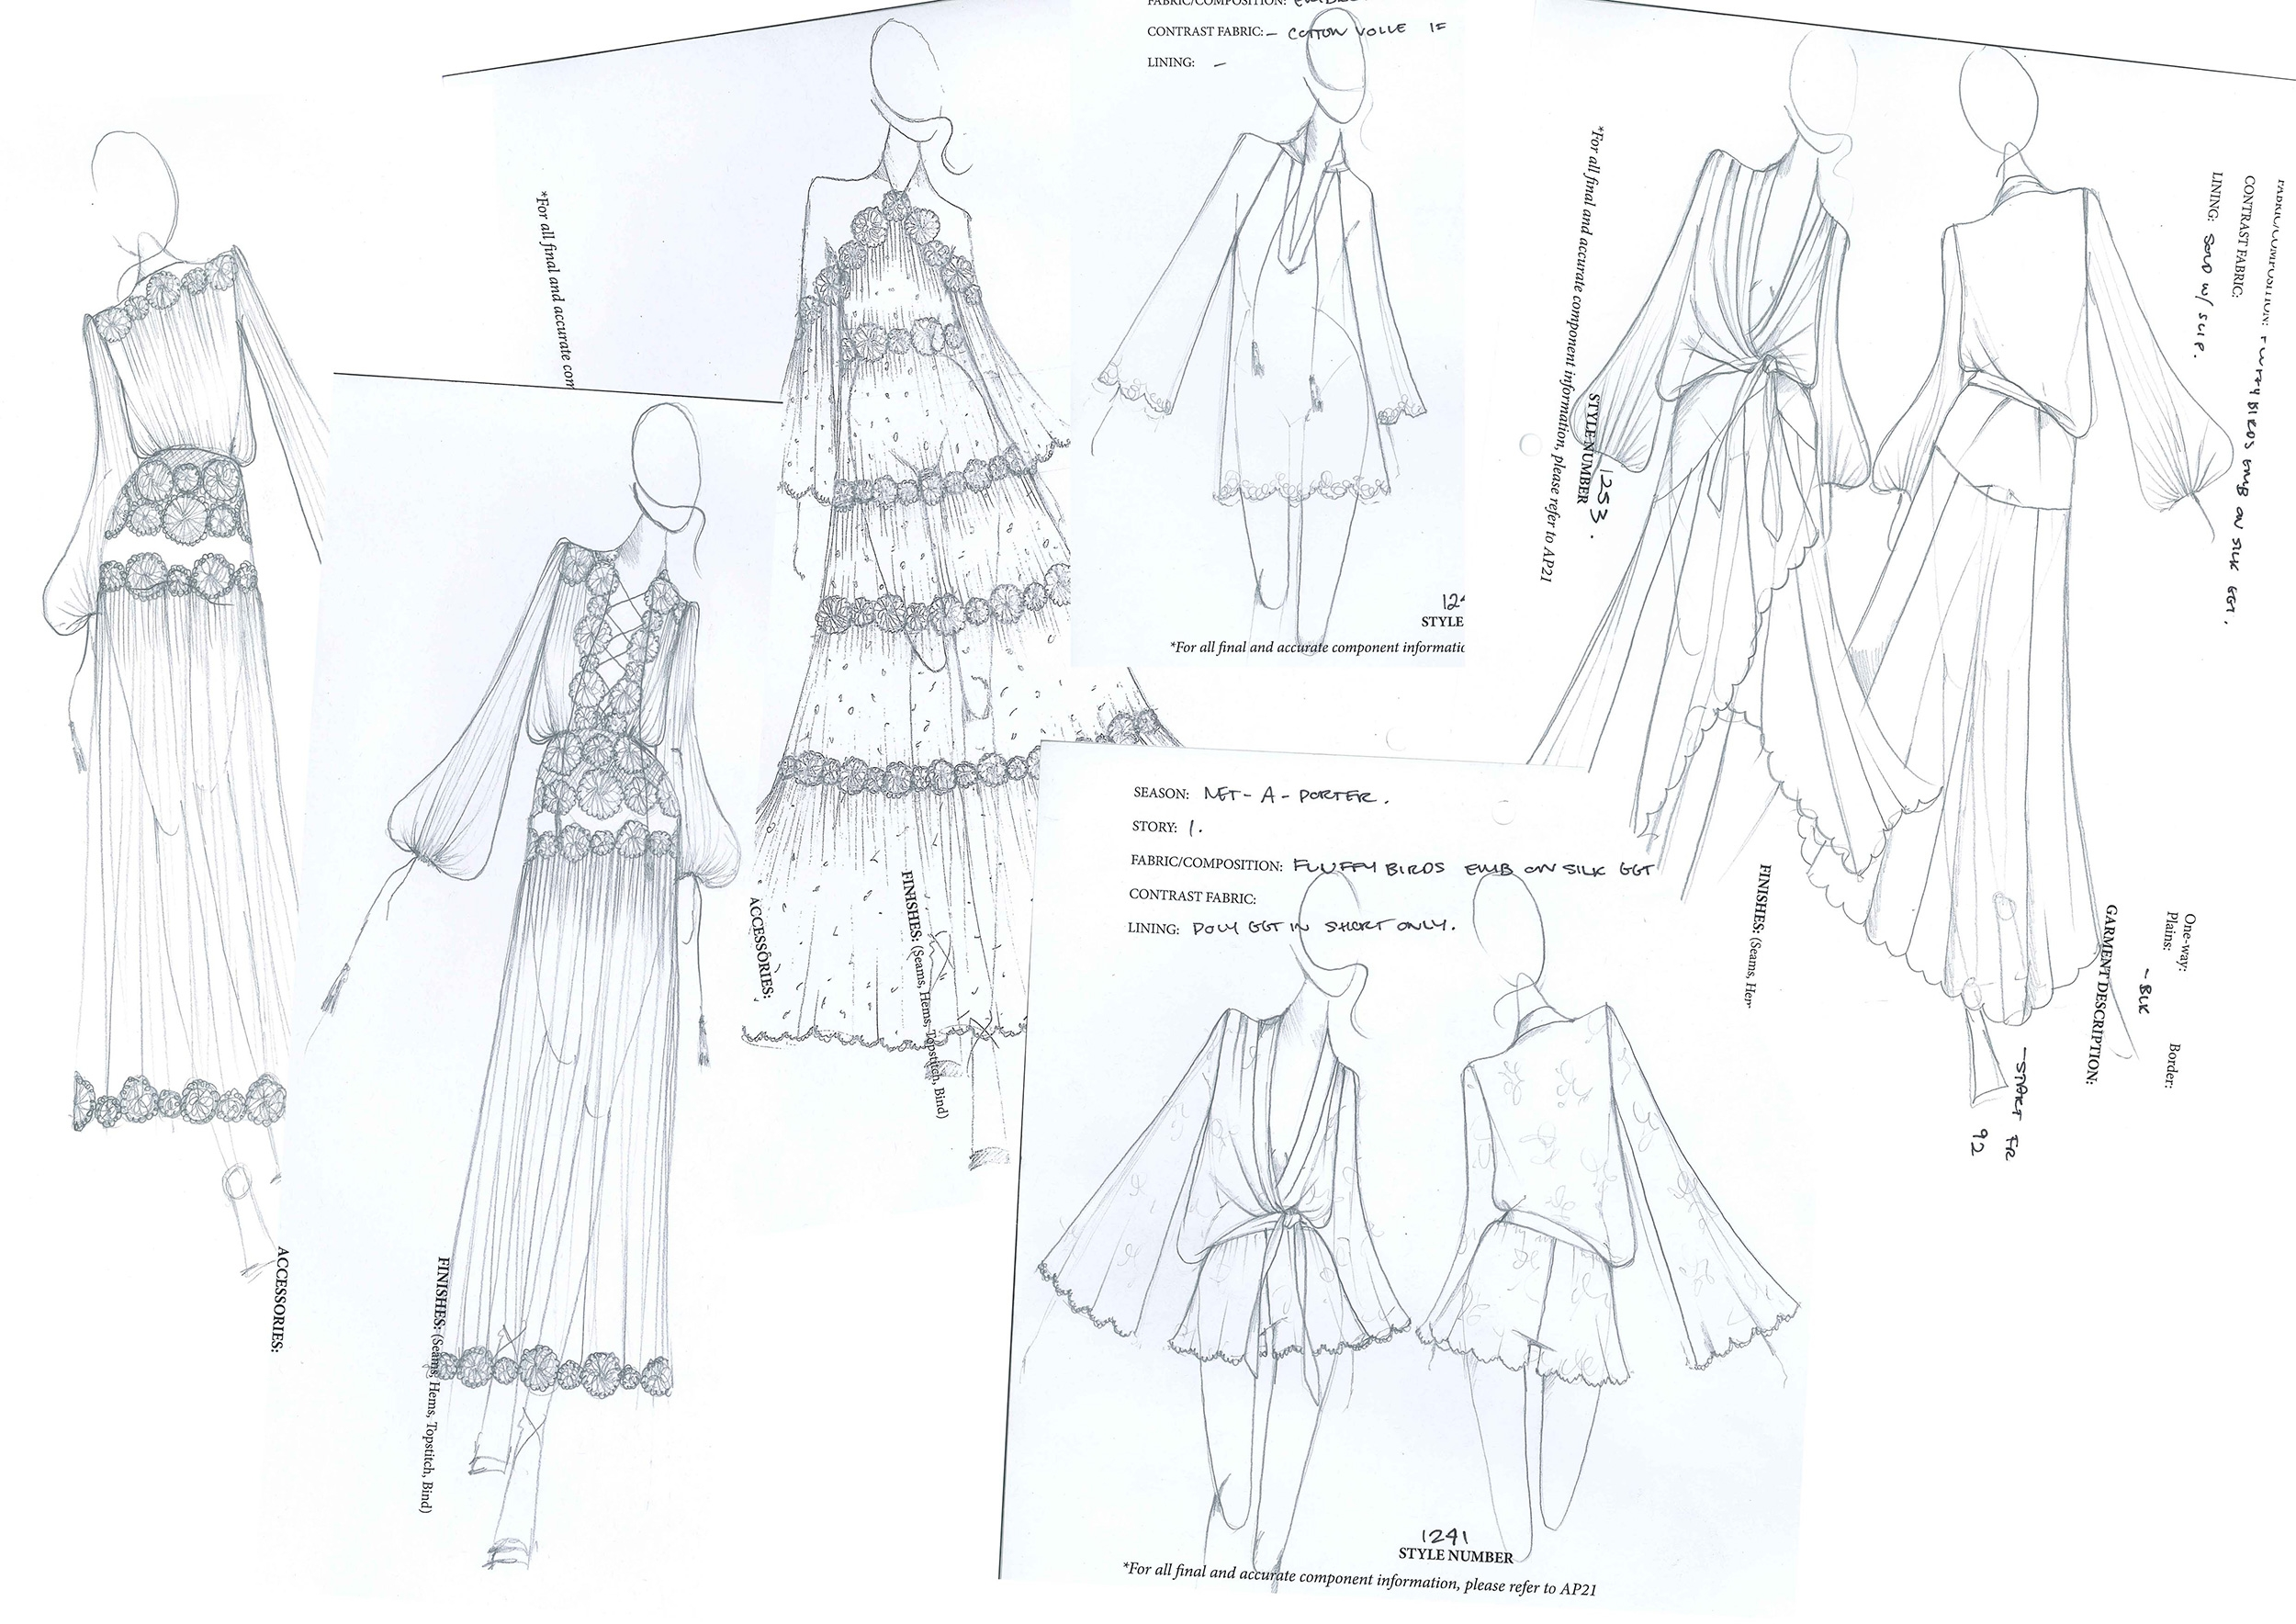 Sketches of the Net-a-Porter Capsule Collection styles